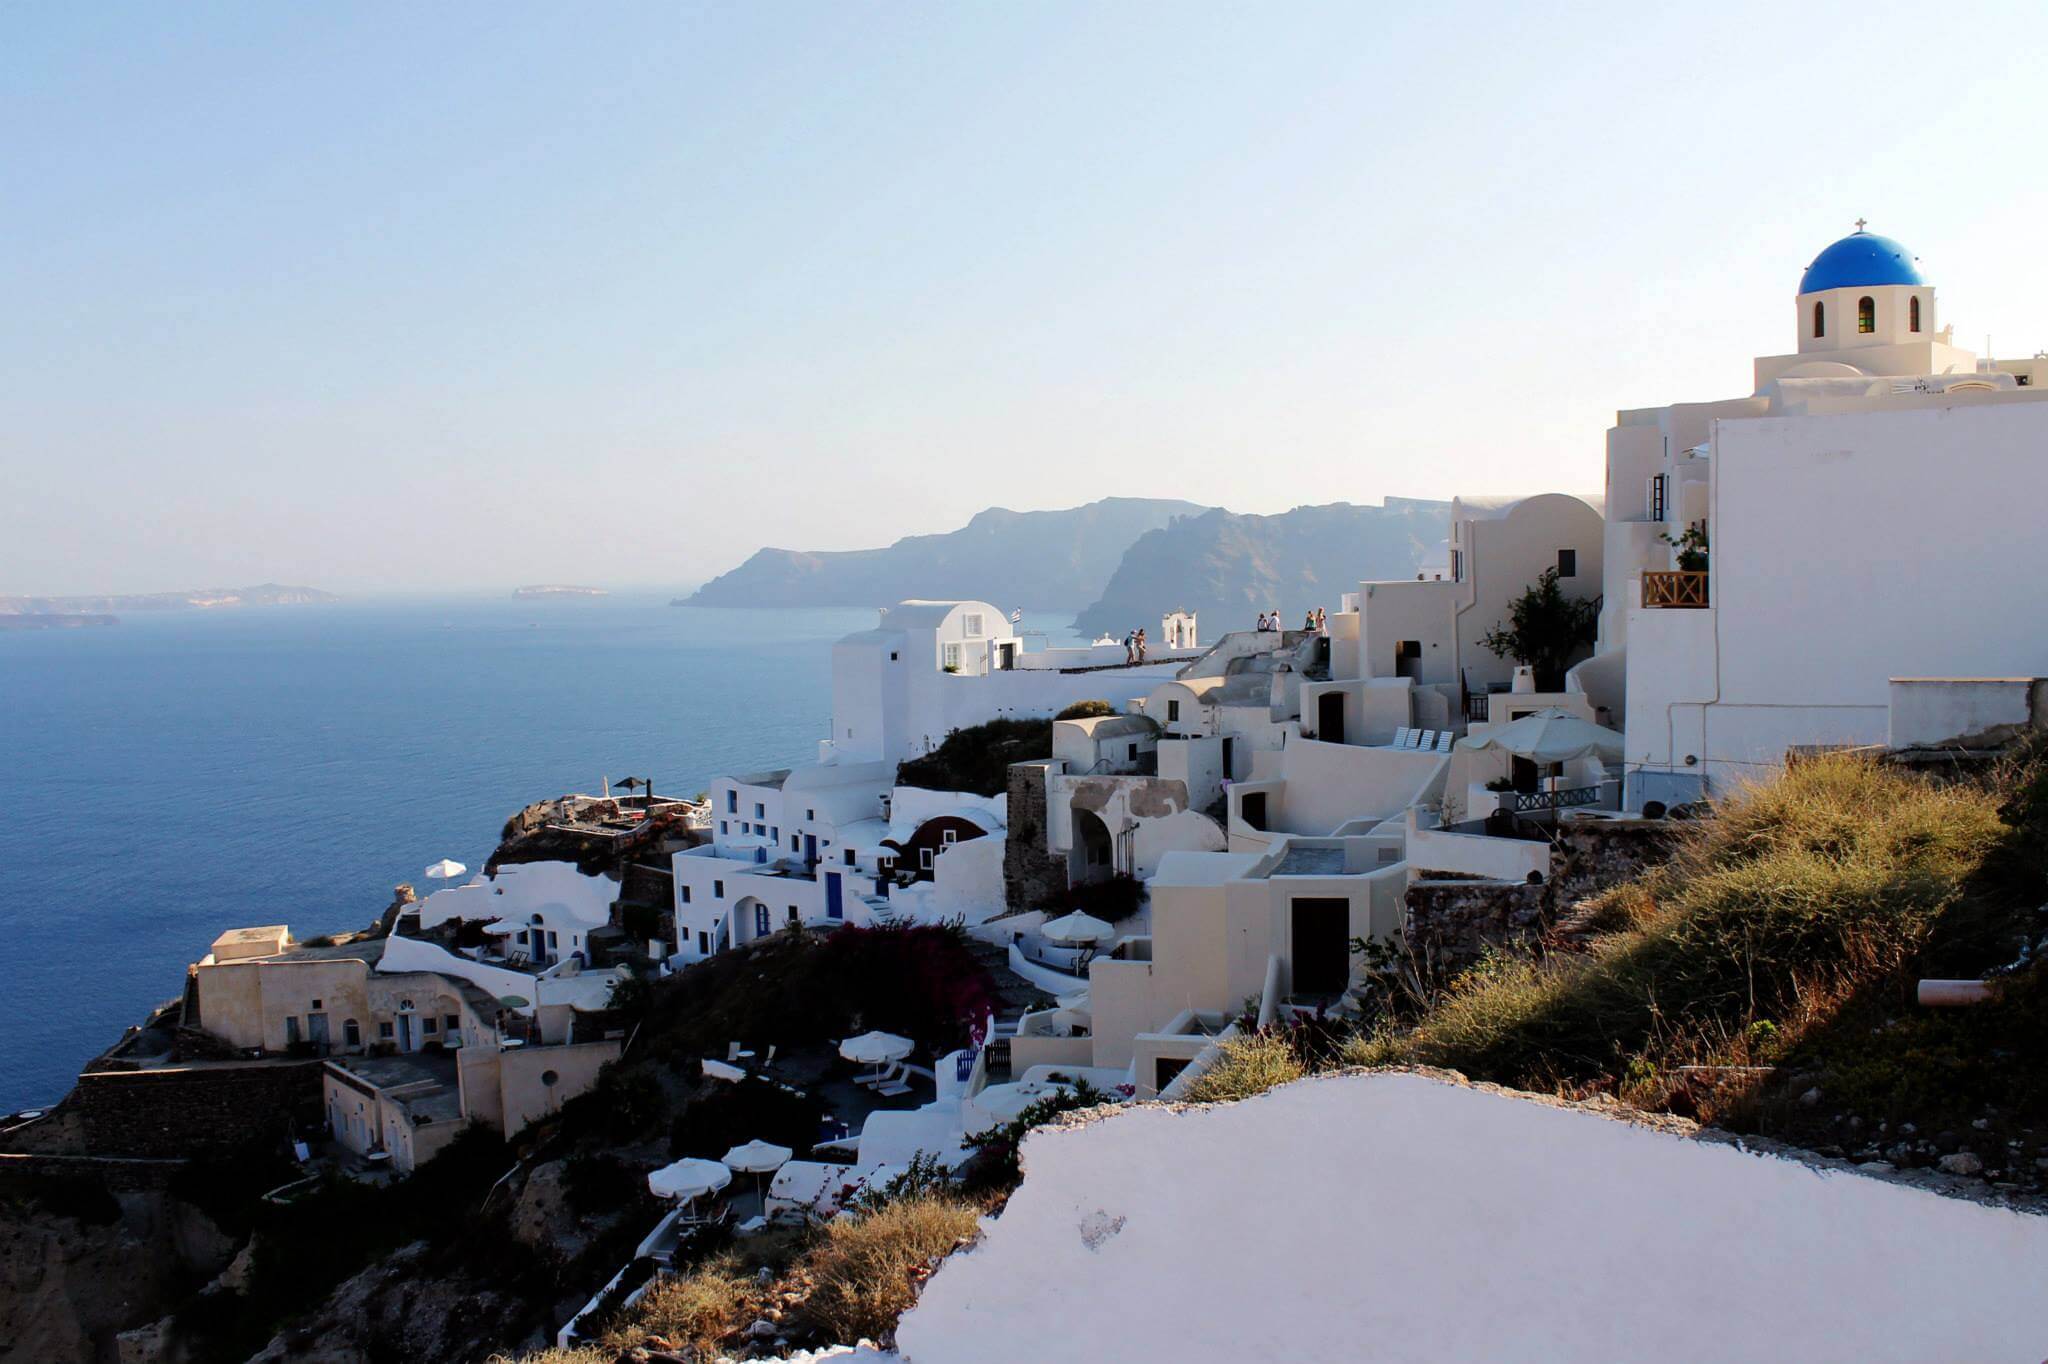 Homes on the cliff in Santorini. Taken by Kirstie.